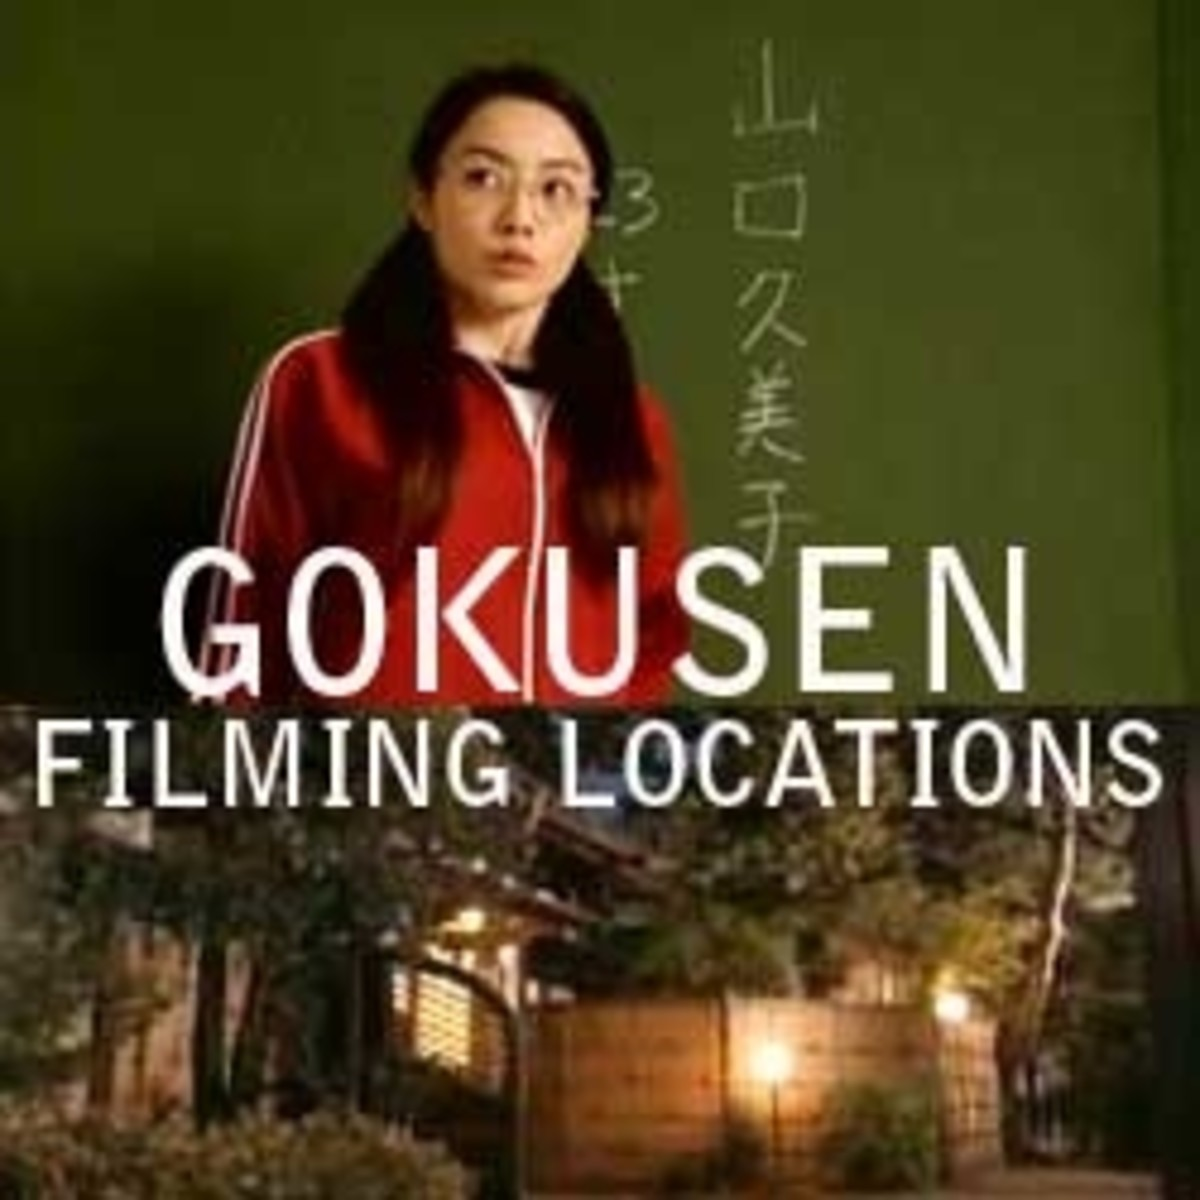 Gokusen (Japanese Drama) Filming Locations